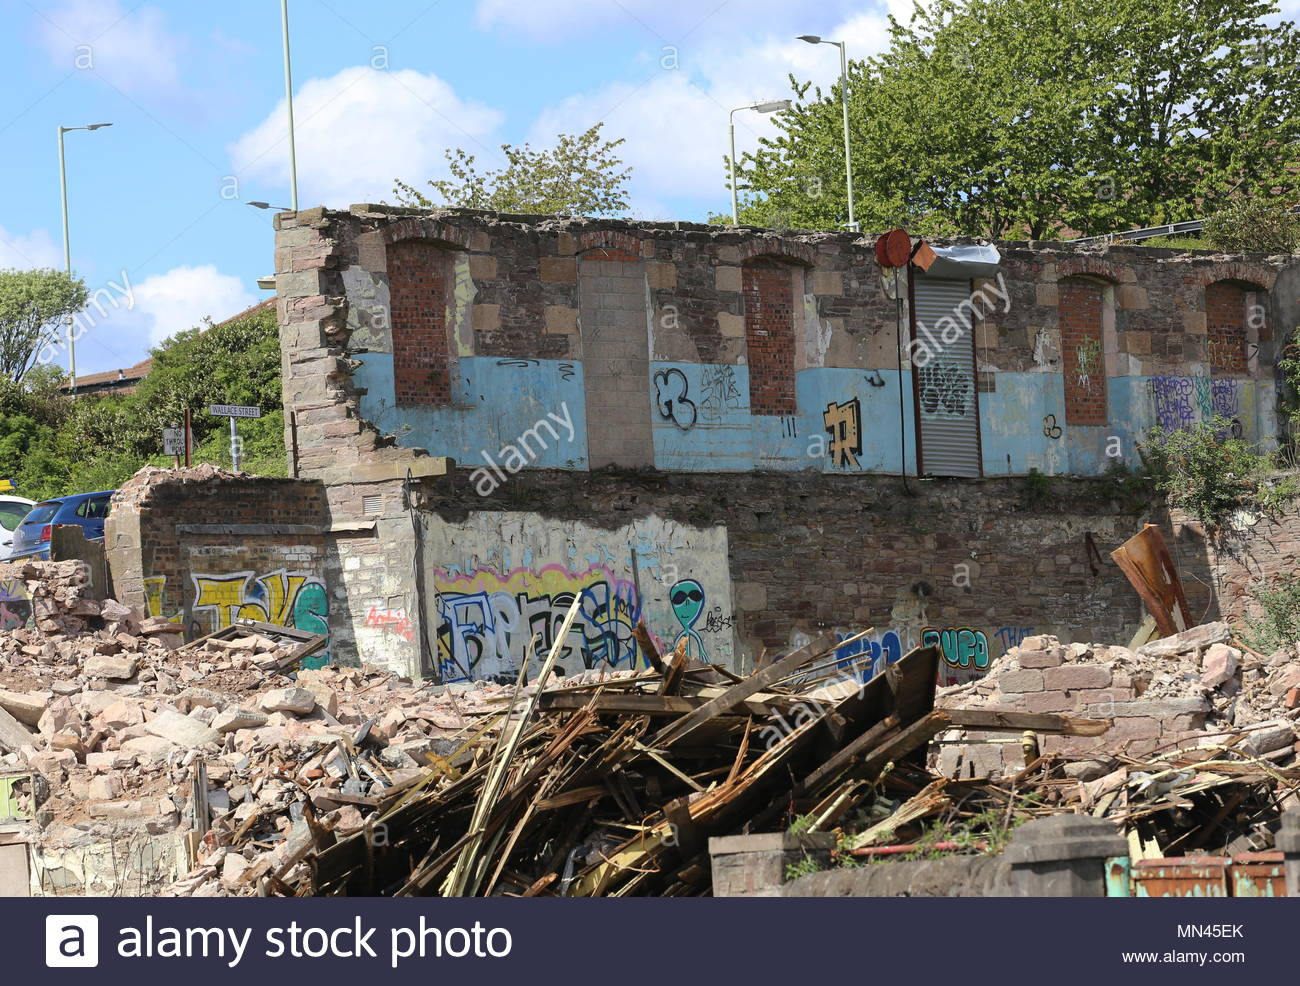 Dundee, UK. 14th May 2018. Demolition of William Halley & Sons' Wallace Craigie Works. The former flax and jute mill was built in 1834 and has been derelict for a number of years.  © Stephen Finn/Alamy Live News Stock Photo